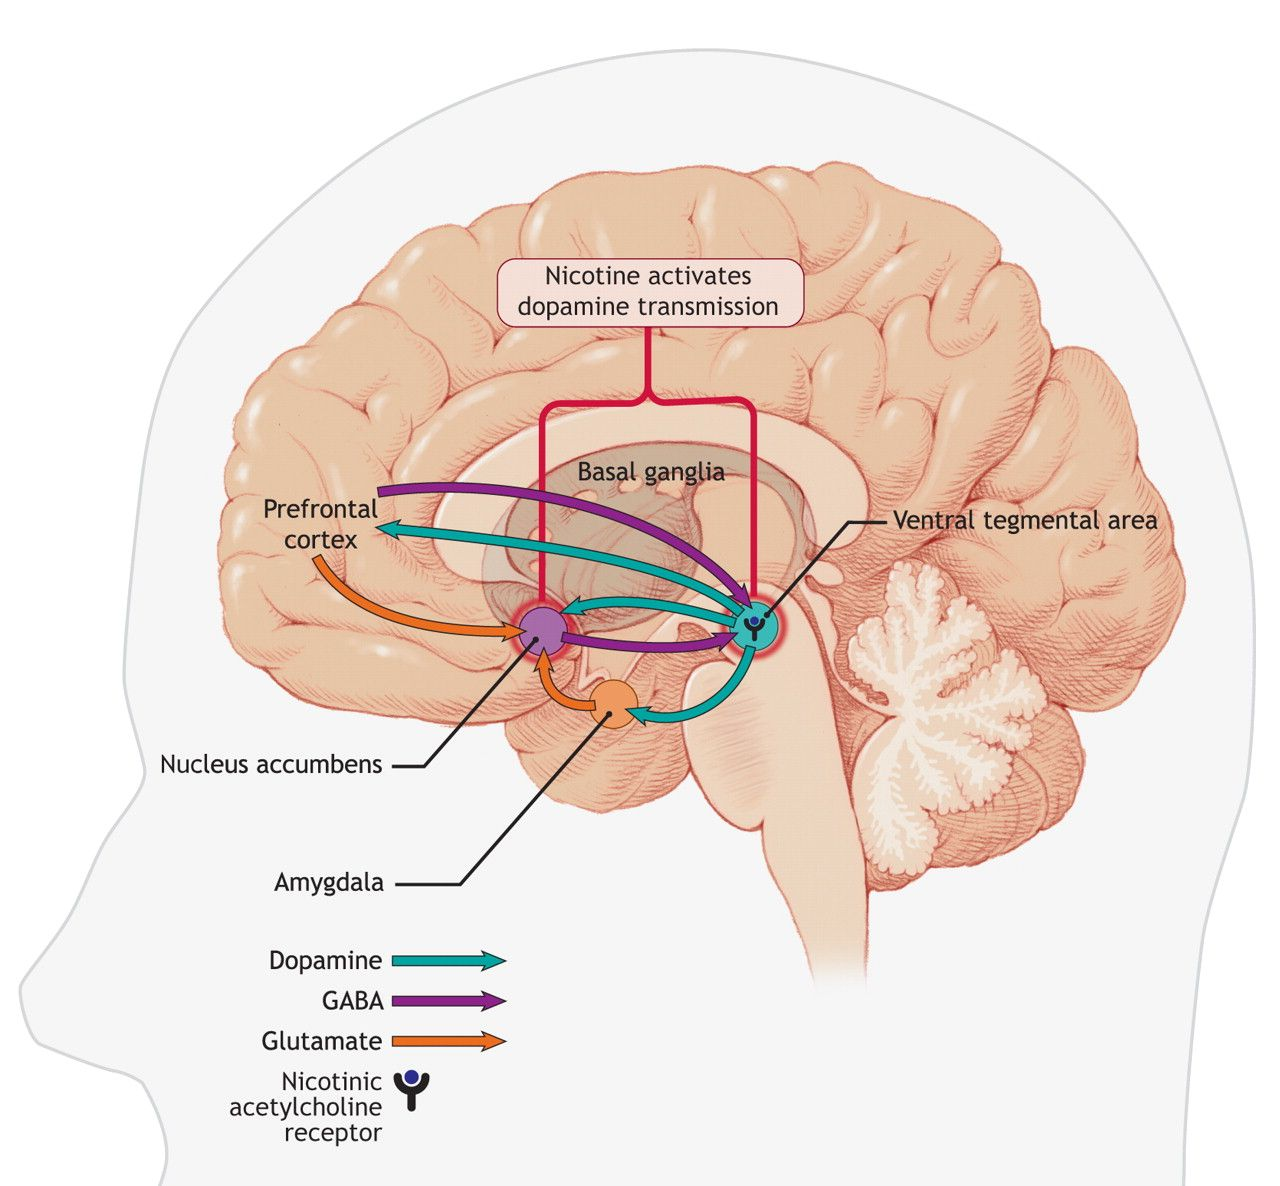 Figure 1 areas in the brain involved in nicotine addiction nicotine figure 1 areas in the brain involved in nicotine addiction nicotine brain diagramnucleus accumbensnicotine ccuart Images